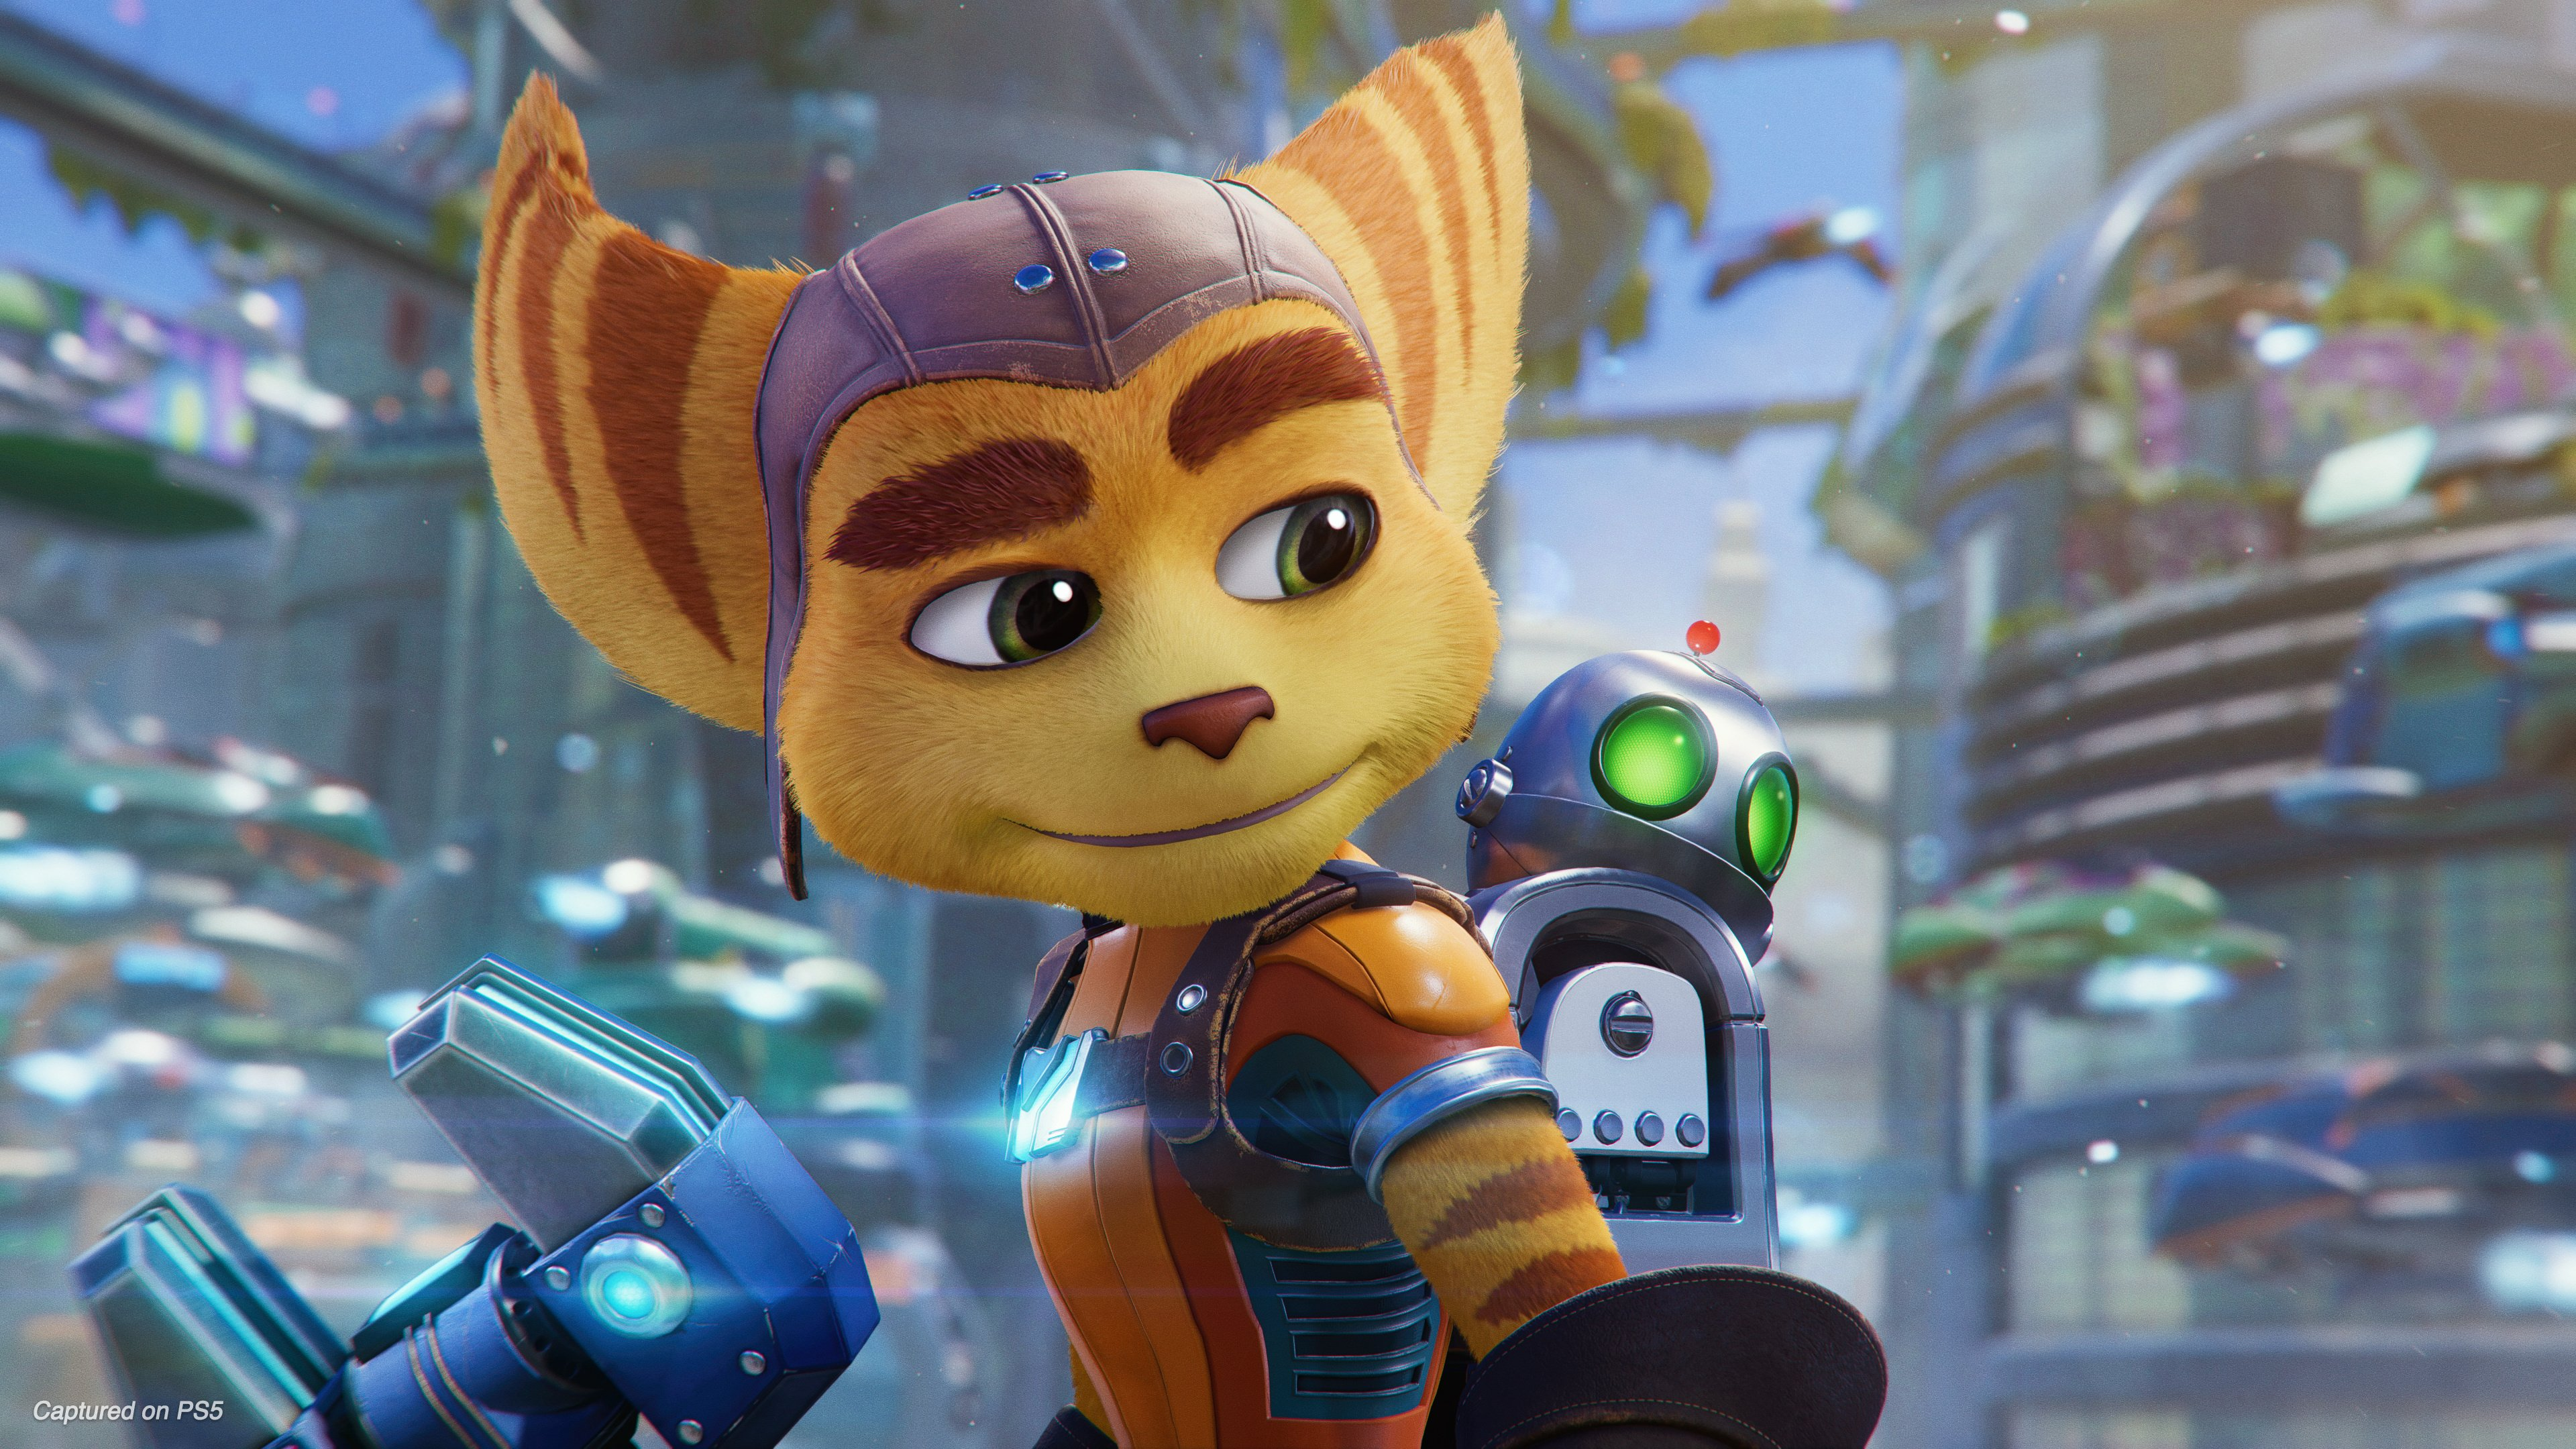 Ratchet and Clank Press Kit